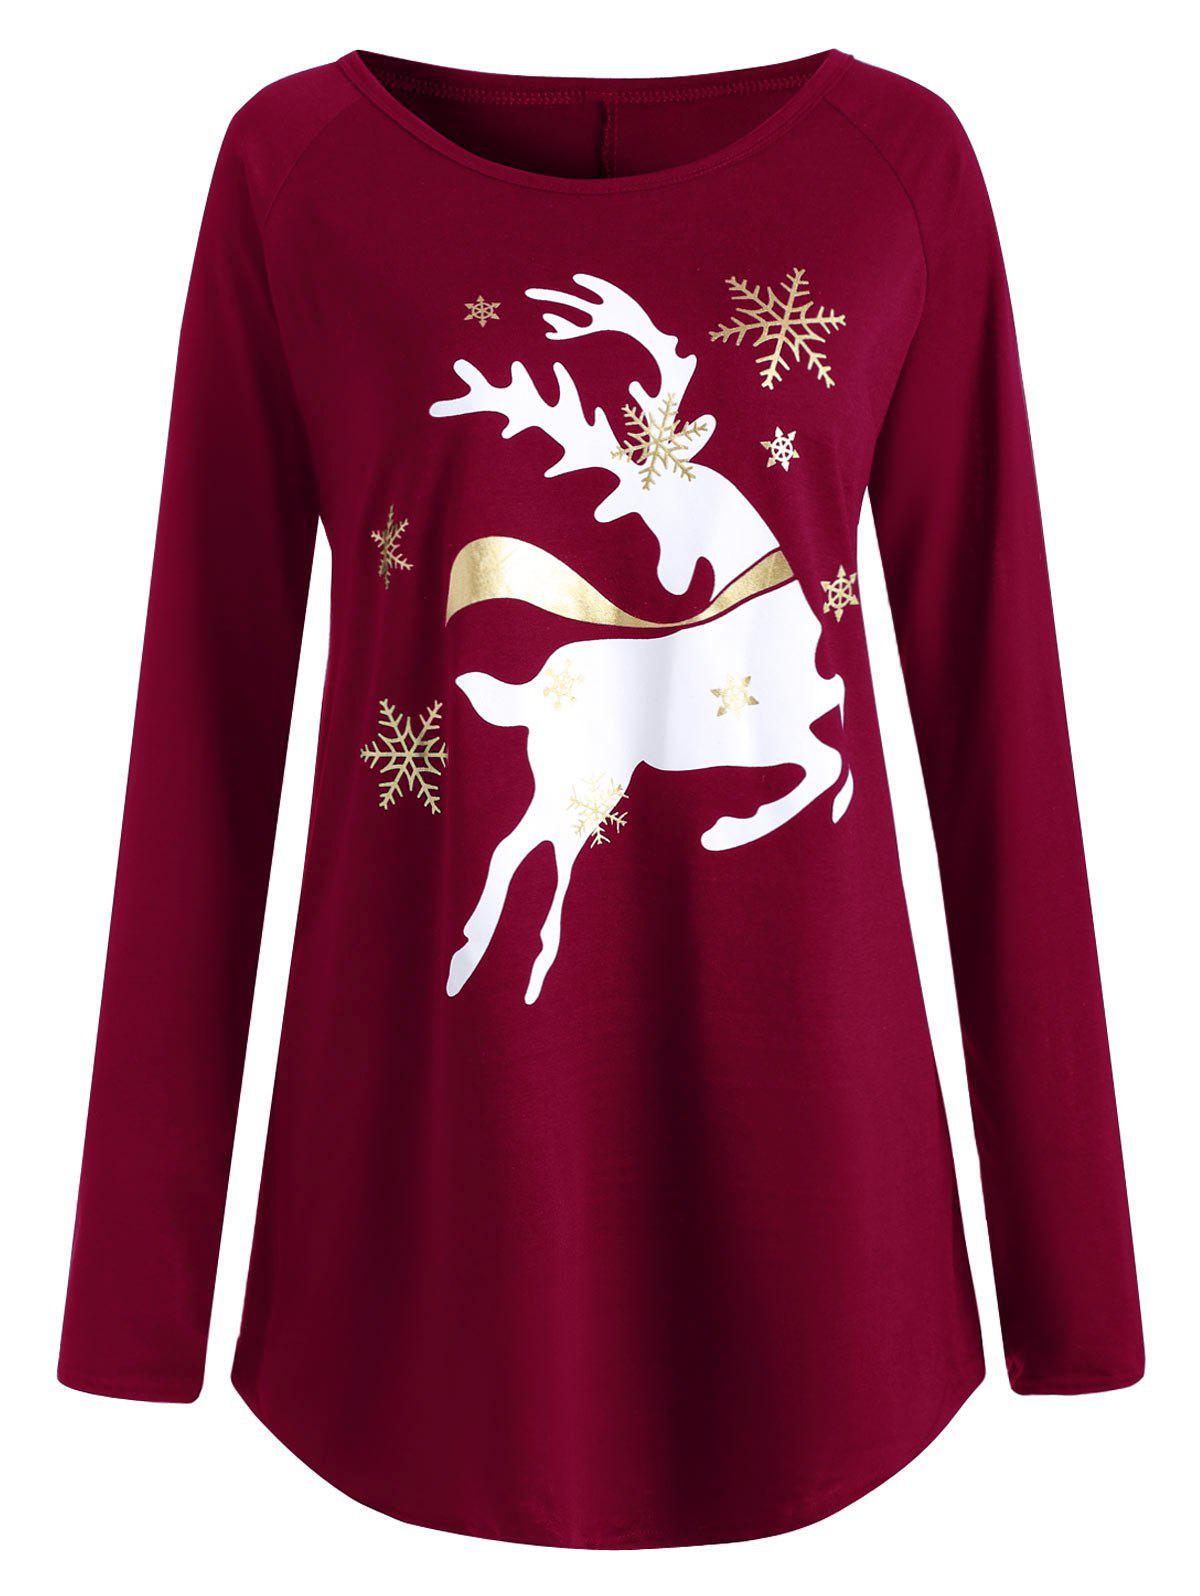 Christmas Tops Plus Size.Christmas Deer Plus Size Graphic T Shirt